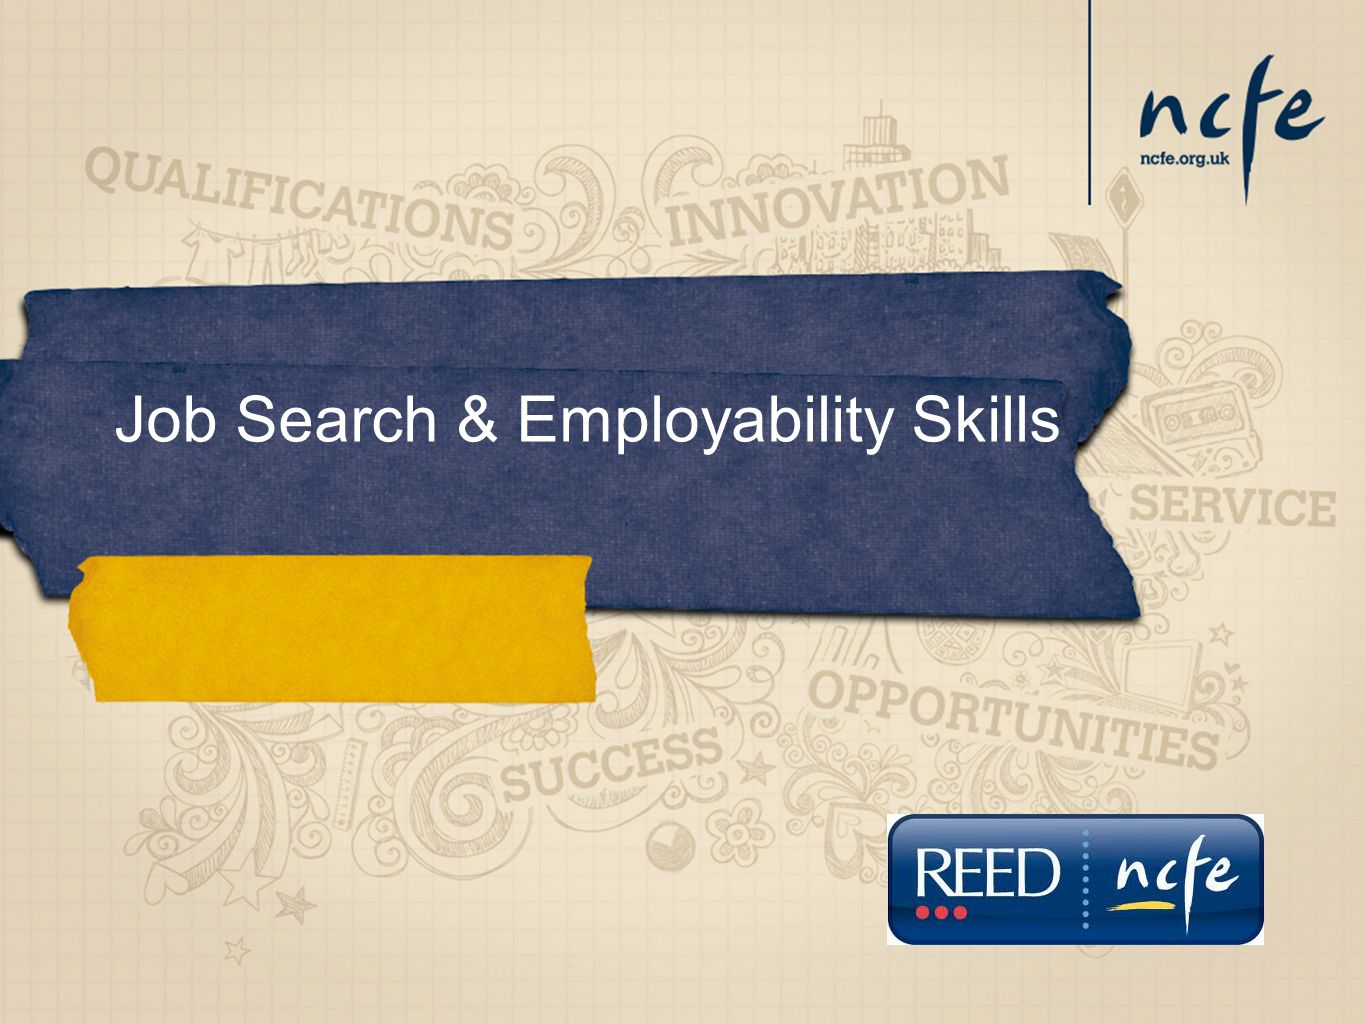 Job Search & Employability Skills